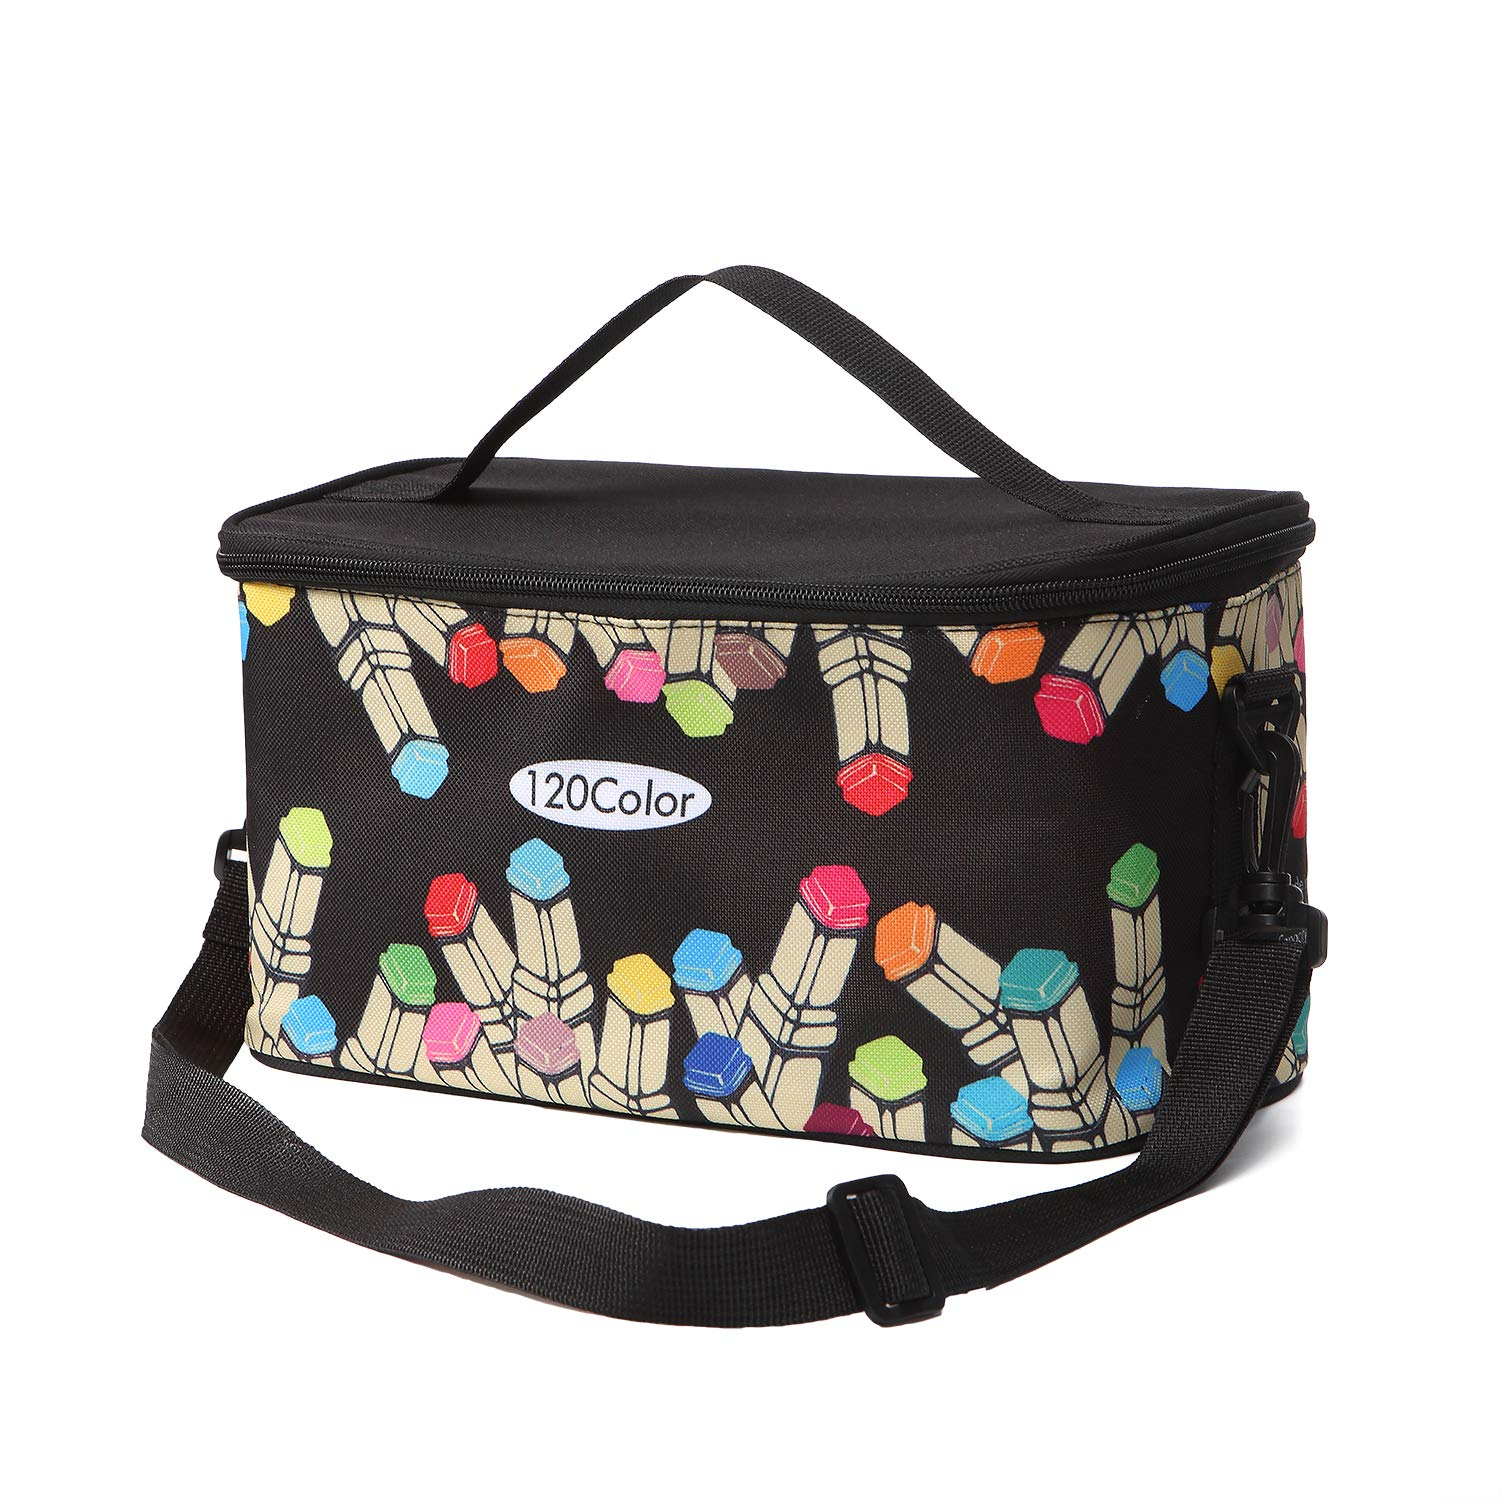 TOUCHFIVE New Marker Pen Case Holder Large Capacity School Bag 120 Markers Organizer Multifunctional Zipper Storage Carrying BagPencil Bags   -